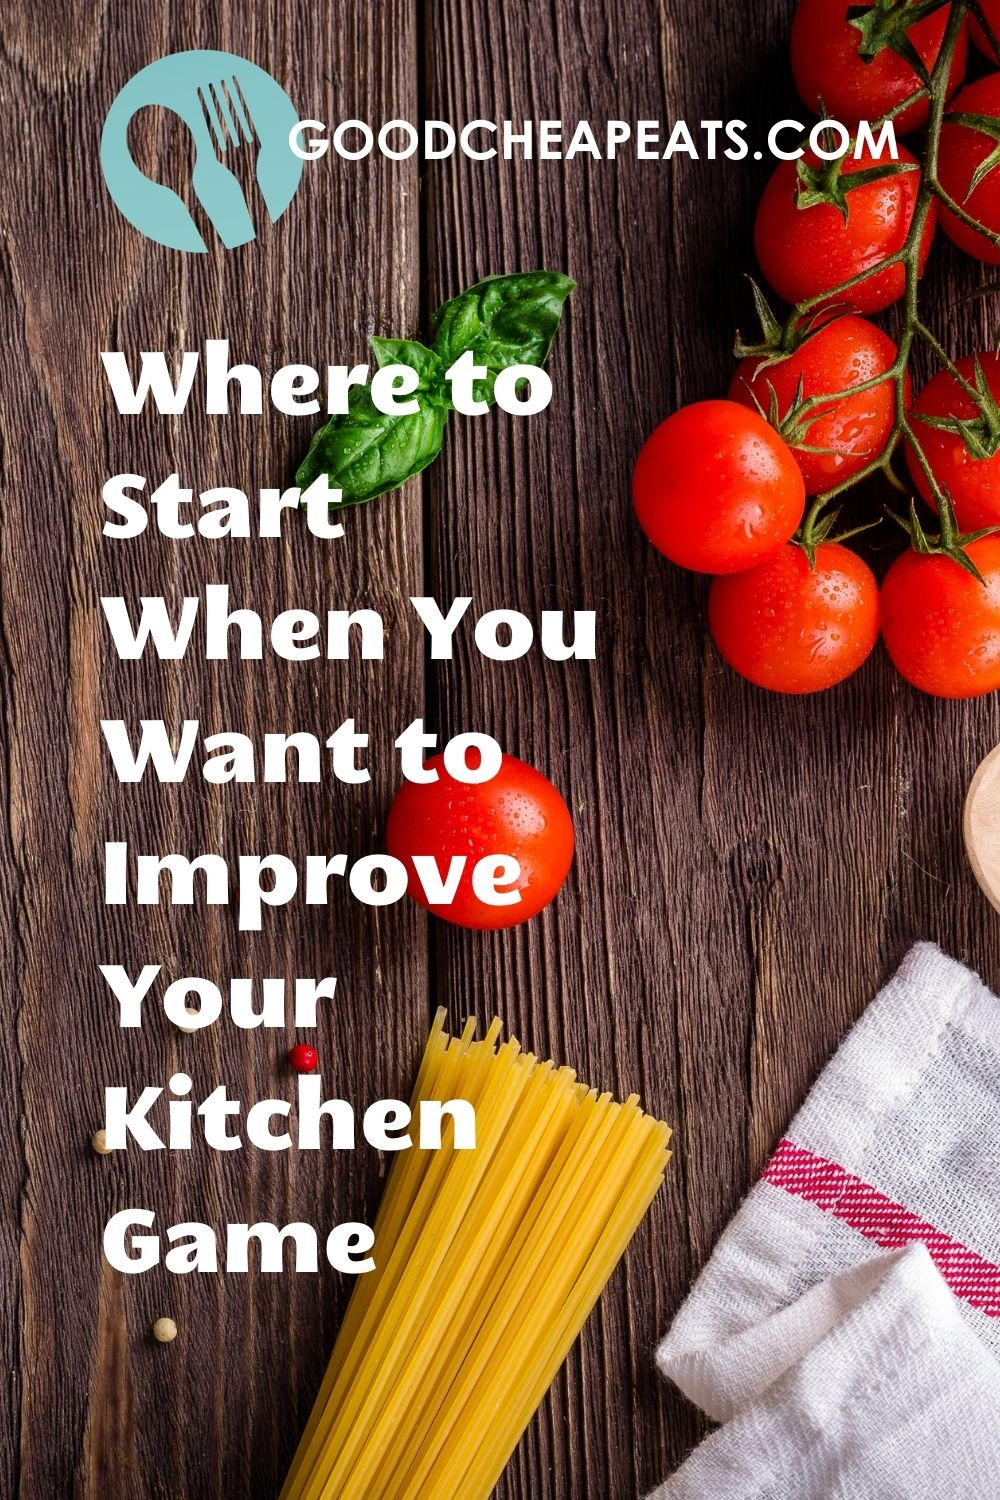 Where to start when you want to improve your kitchen game